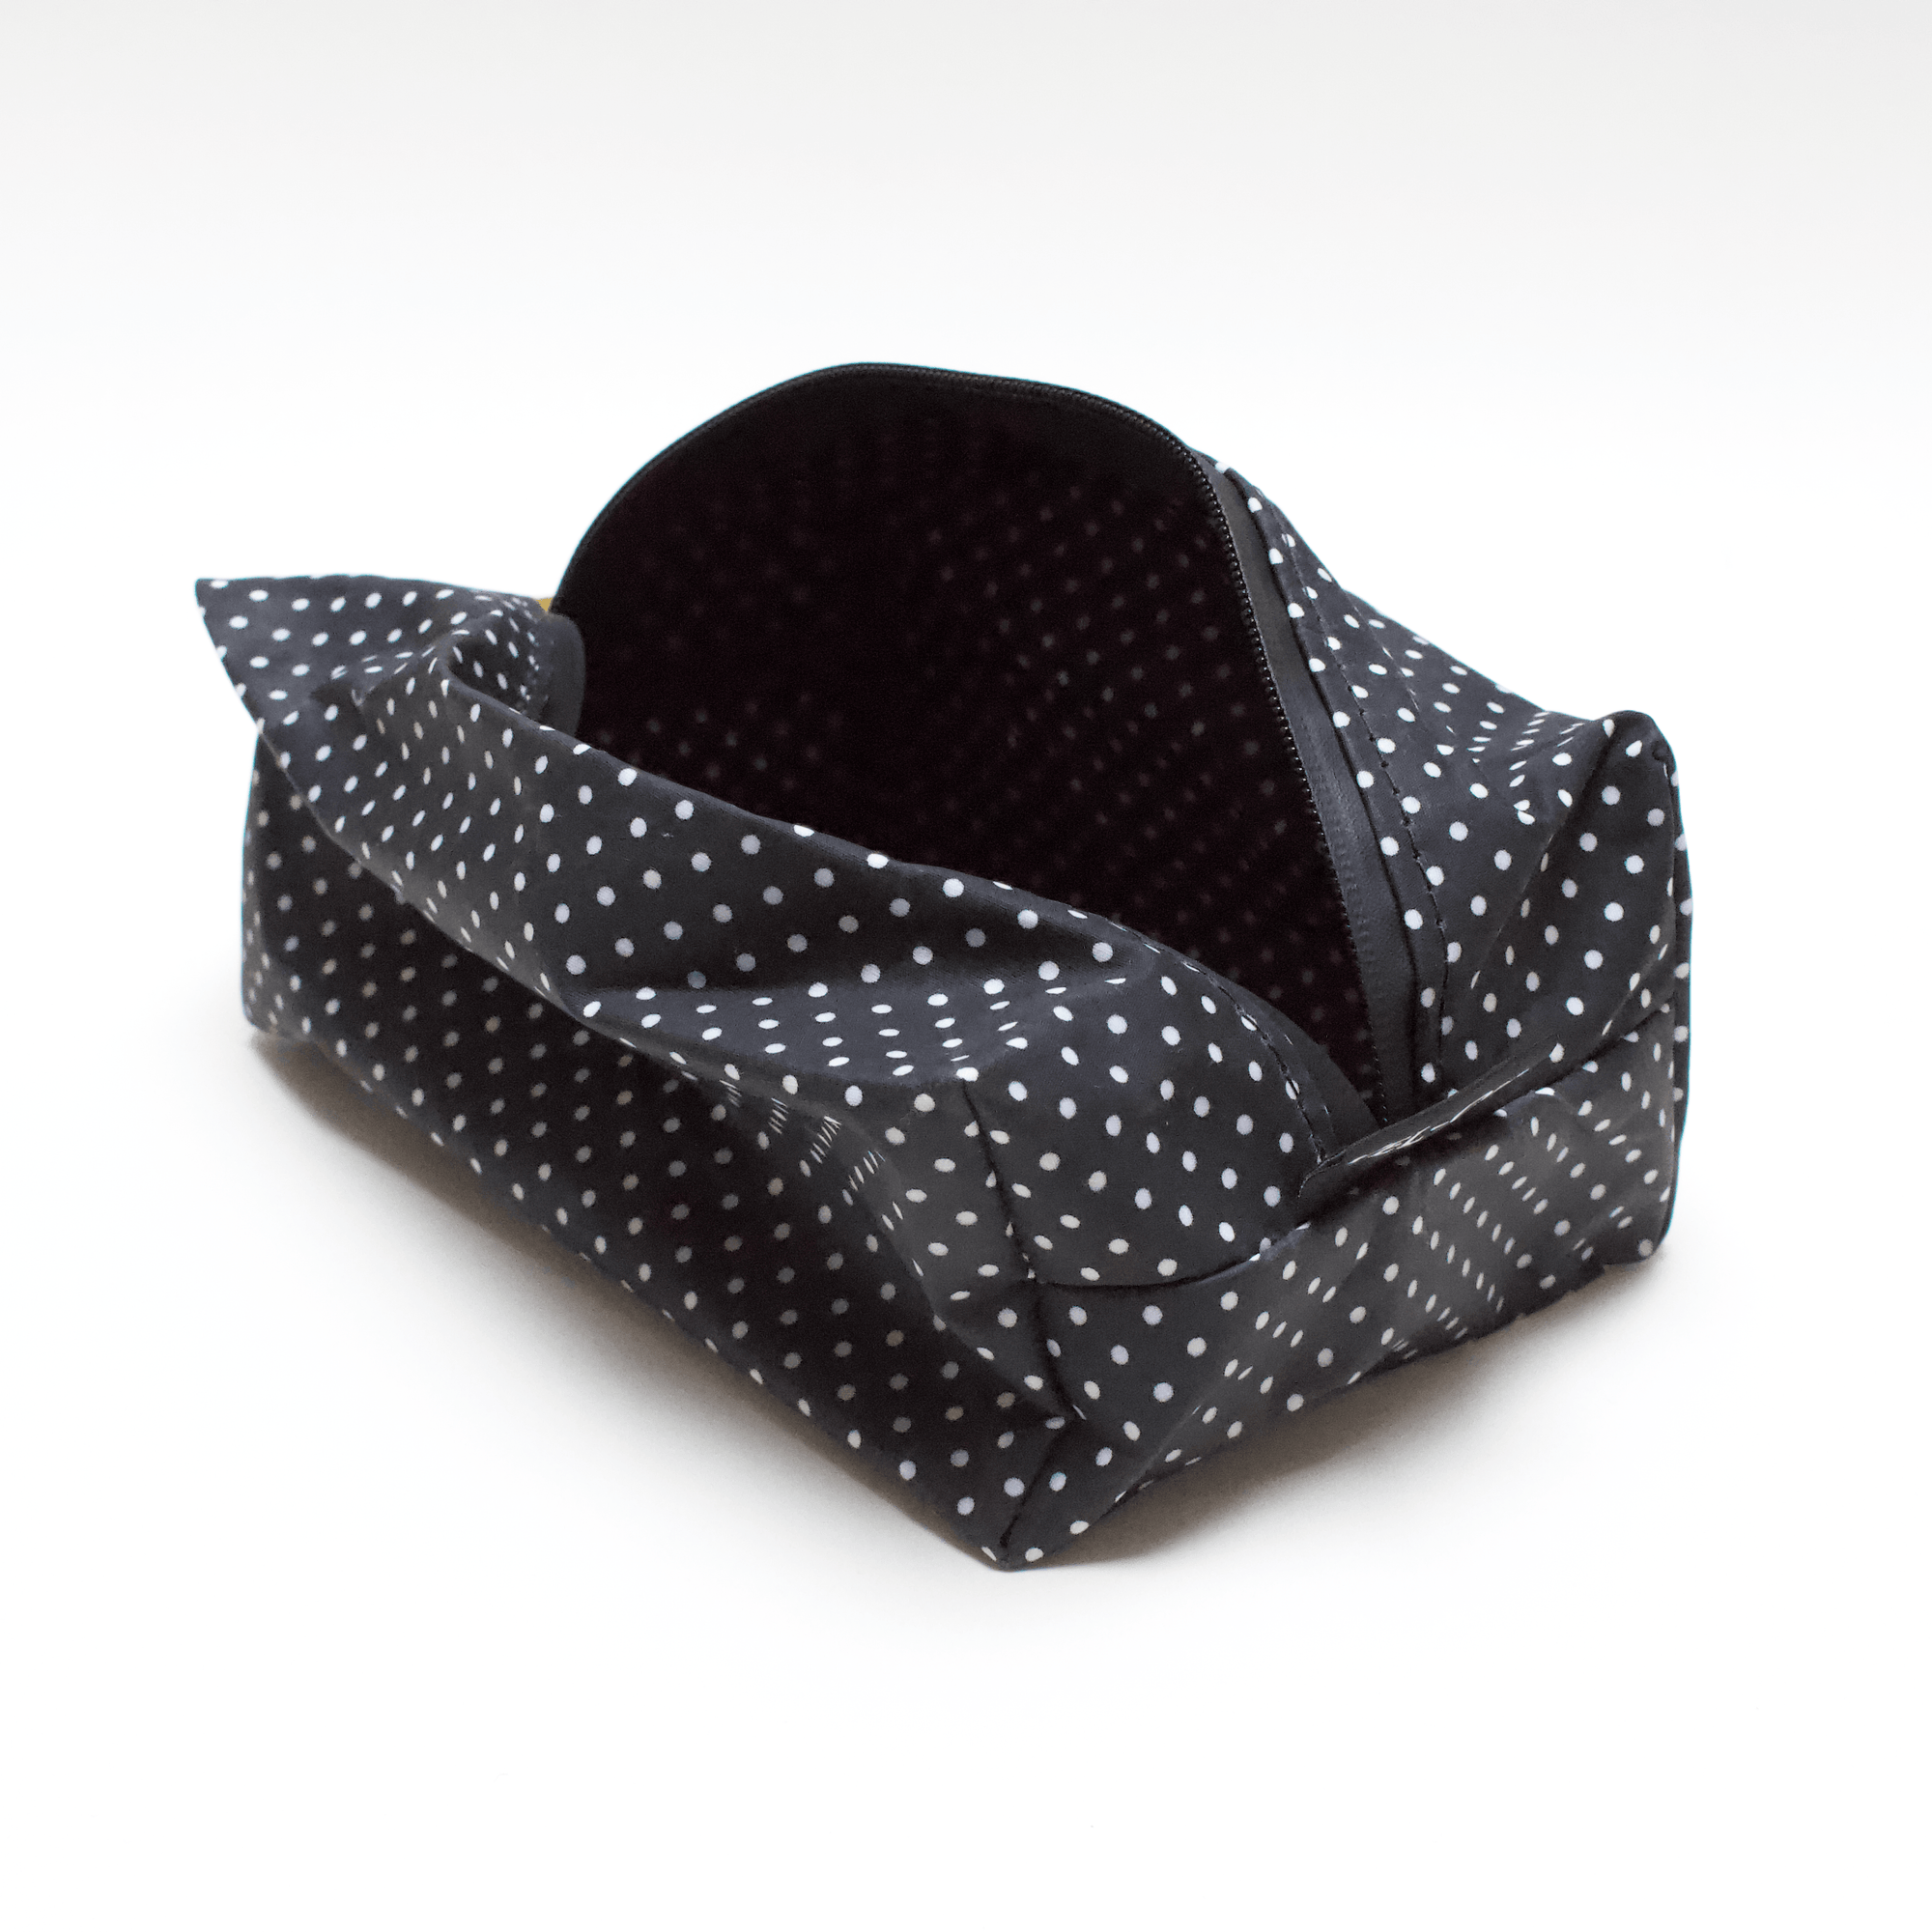 Obsessed Wash Bag - Polka Dot | Black leather - Vel-Oh